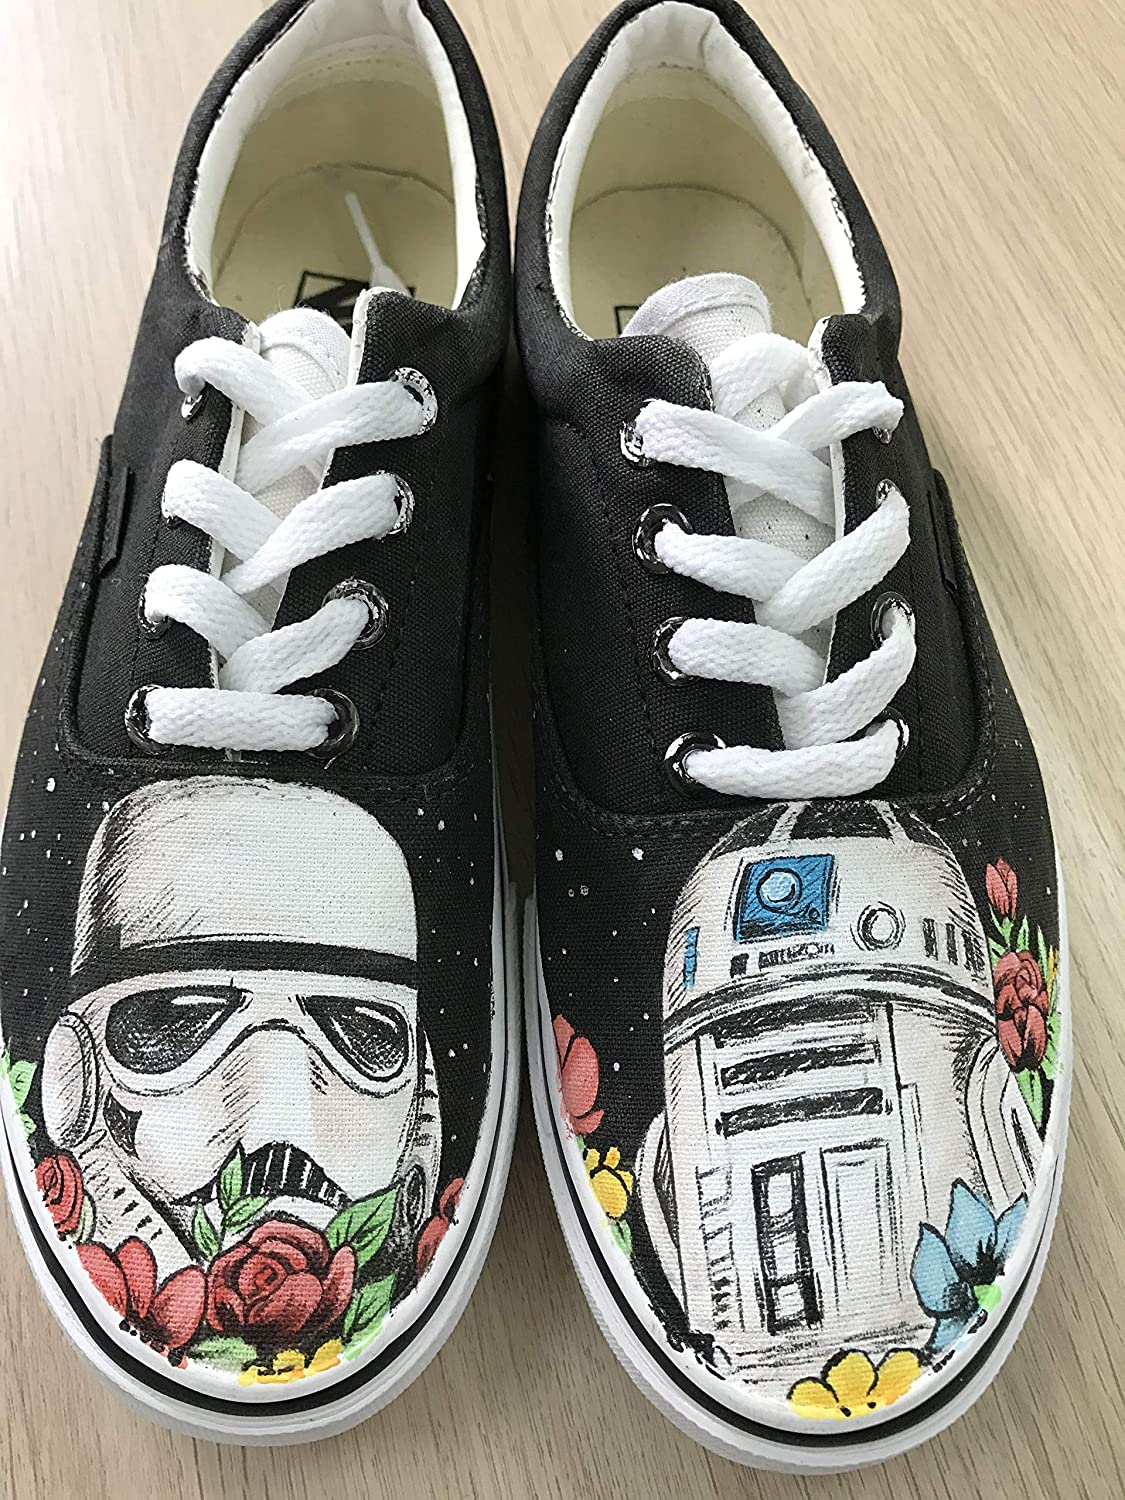 33e237f877 Amazon.com  Star Wars Custom Vans Authentic Custom Shoes Vans Authentic  Custom Hand Painted Shoes Hand Painted Vans Authentic Custom Vans Sneakers  FREE ...